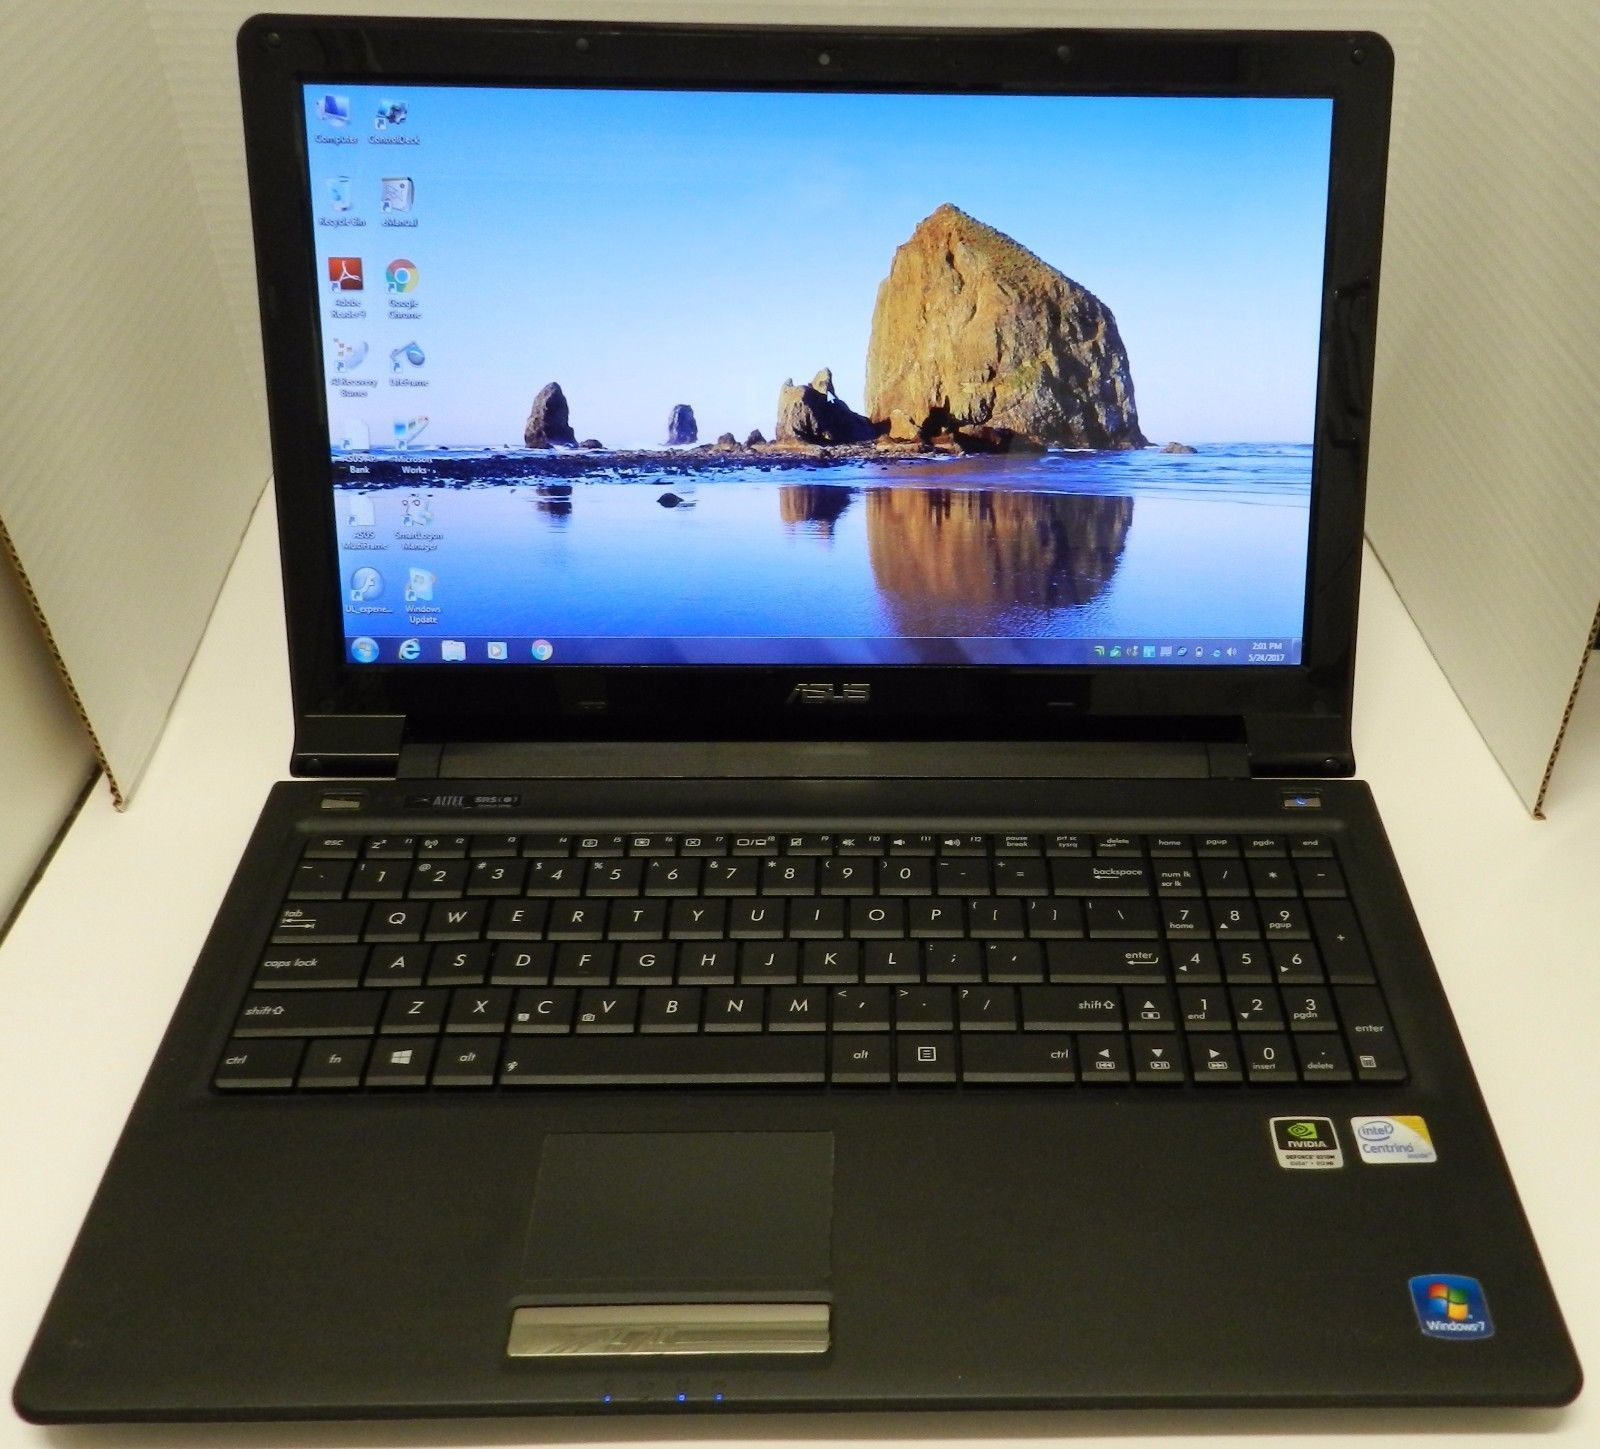 ASUS UL50VS NOTEBOOK VGA WINDOWS 7 DRIVER